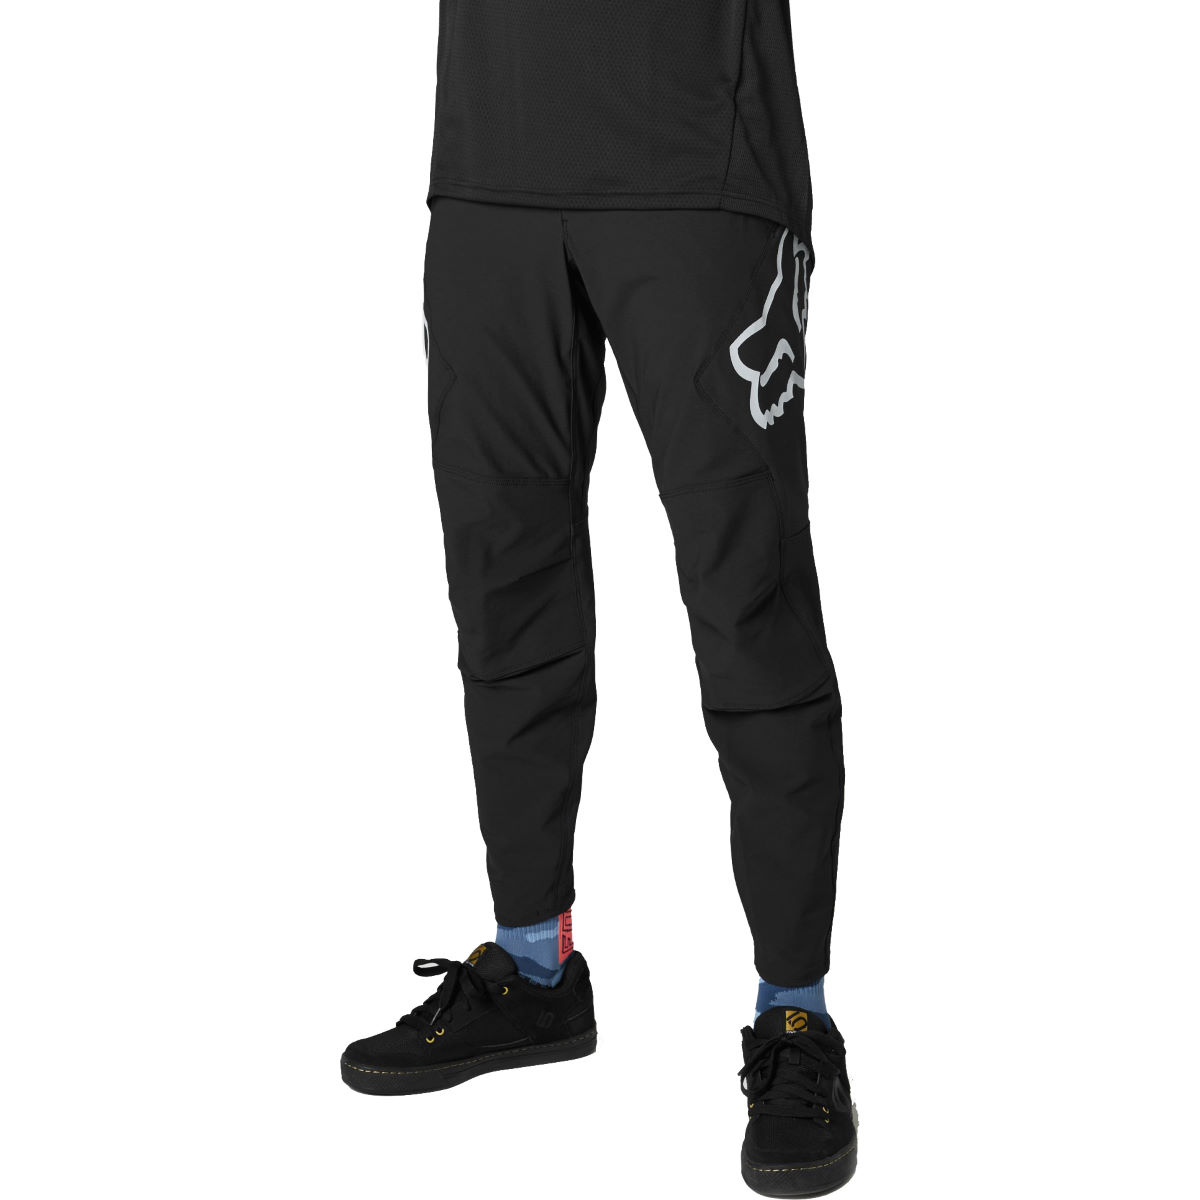 Fox Racing Defend Cycling Trousers Rs - 34 Black  Trousers